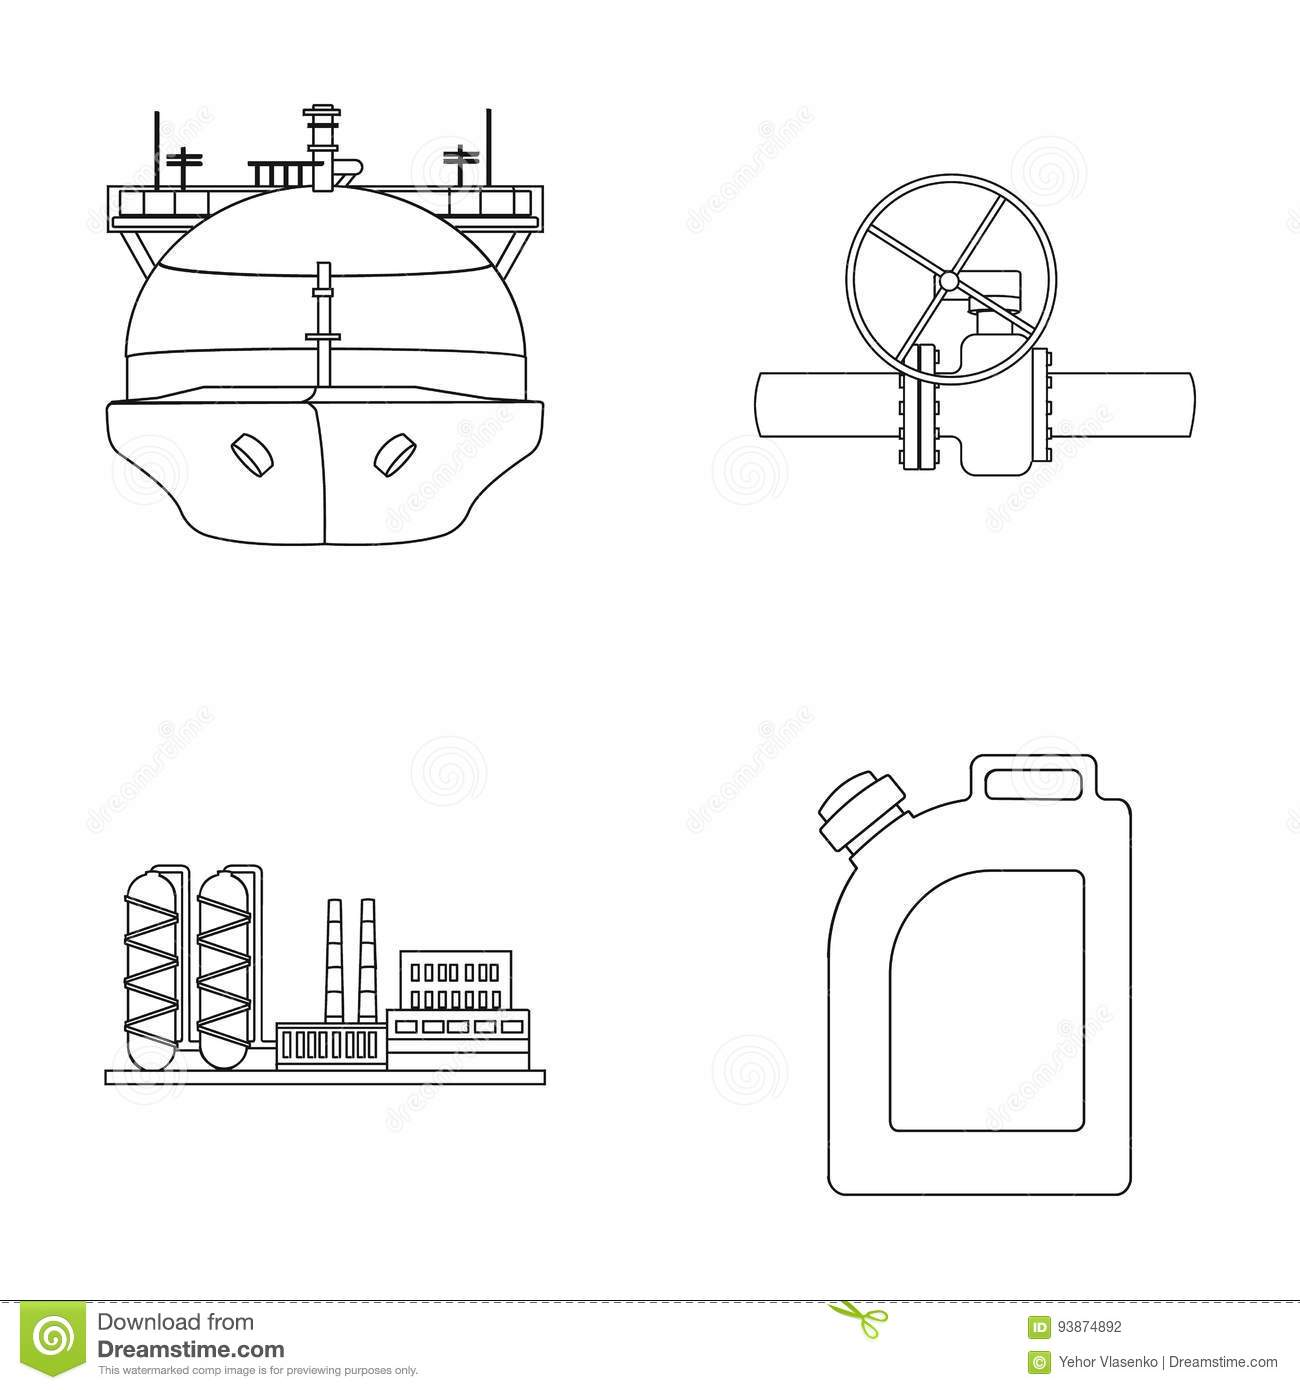 oilman cartoons  illustrations  u0026 vector stock images